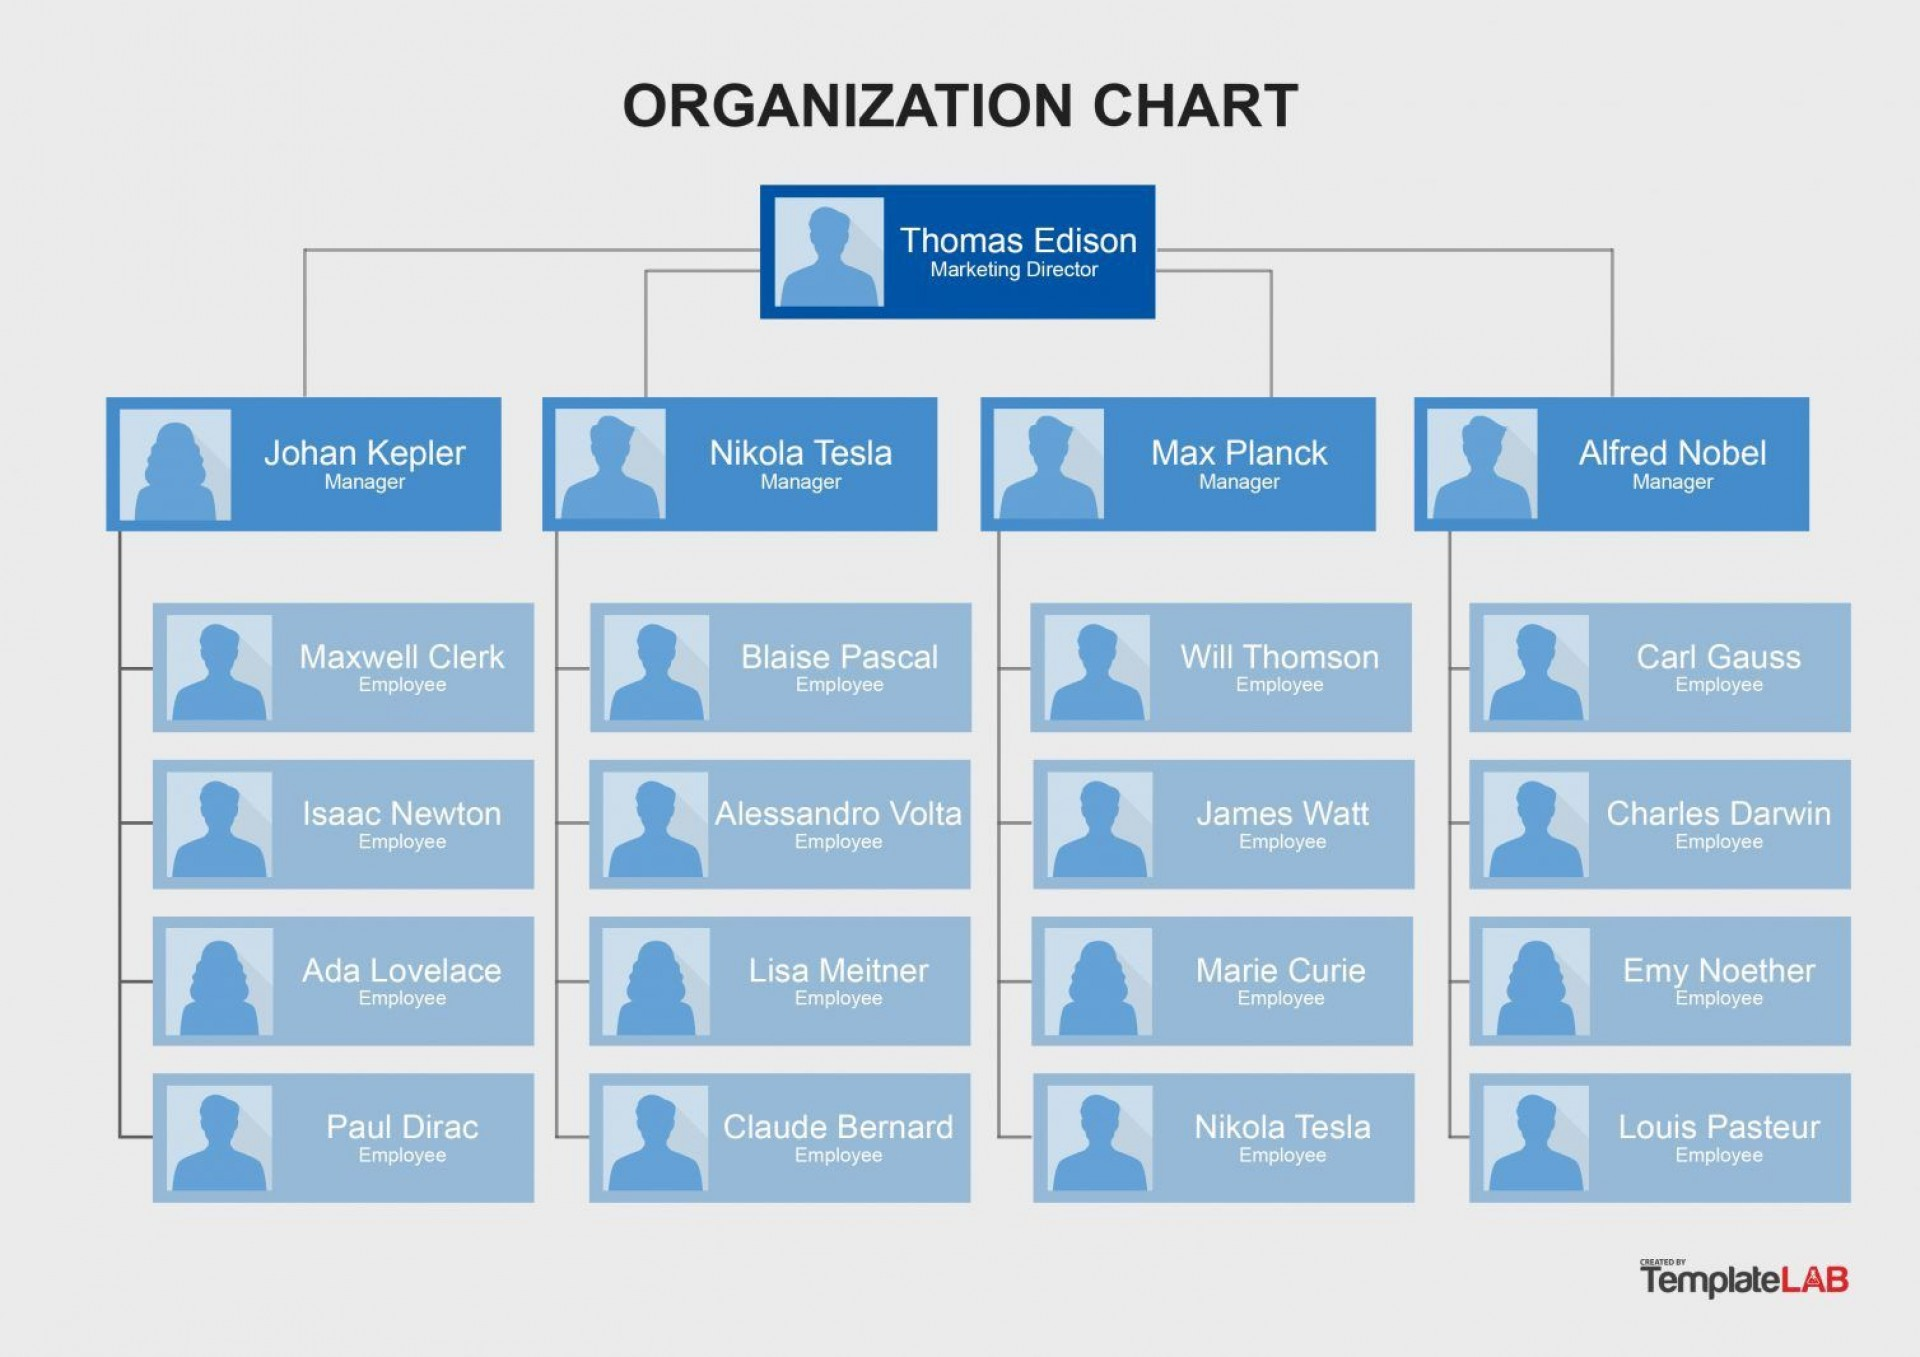 007 Wonderful Org Chart Template Excel 2013 Inspiration  Organizational1920